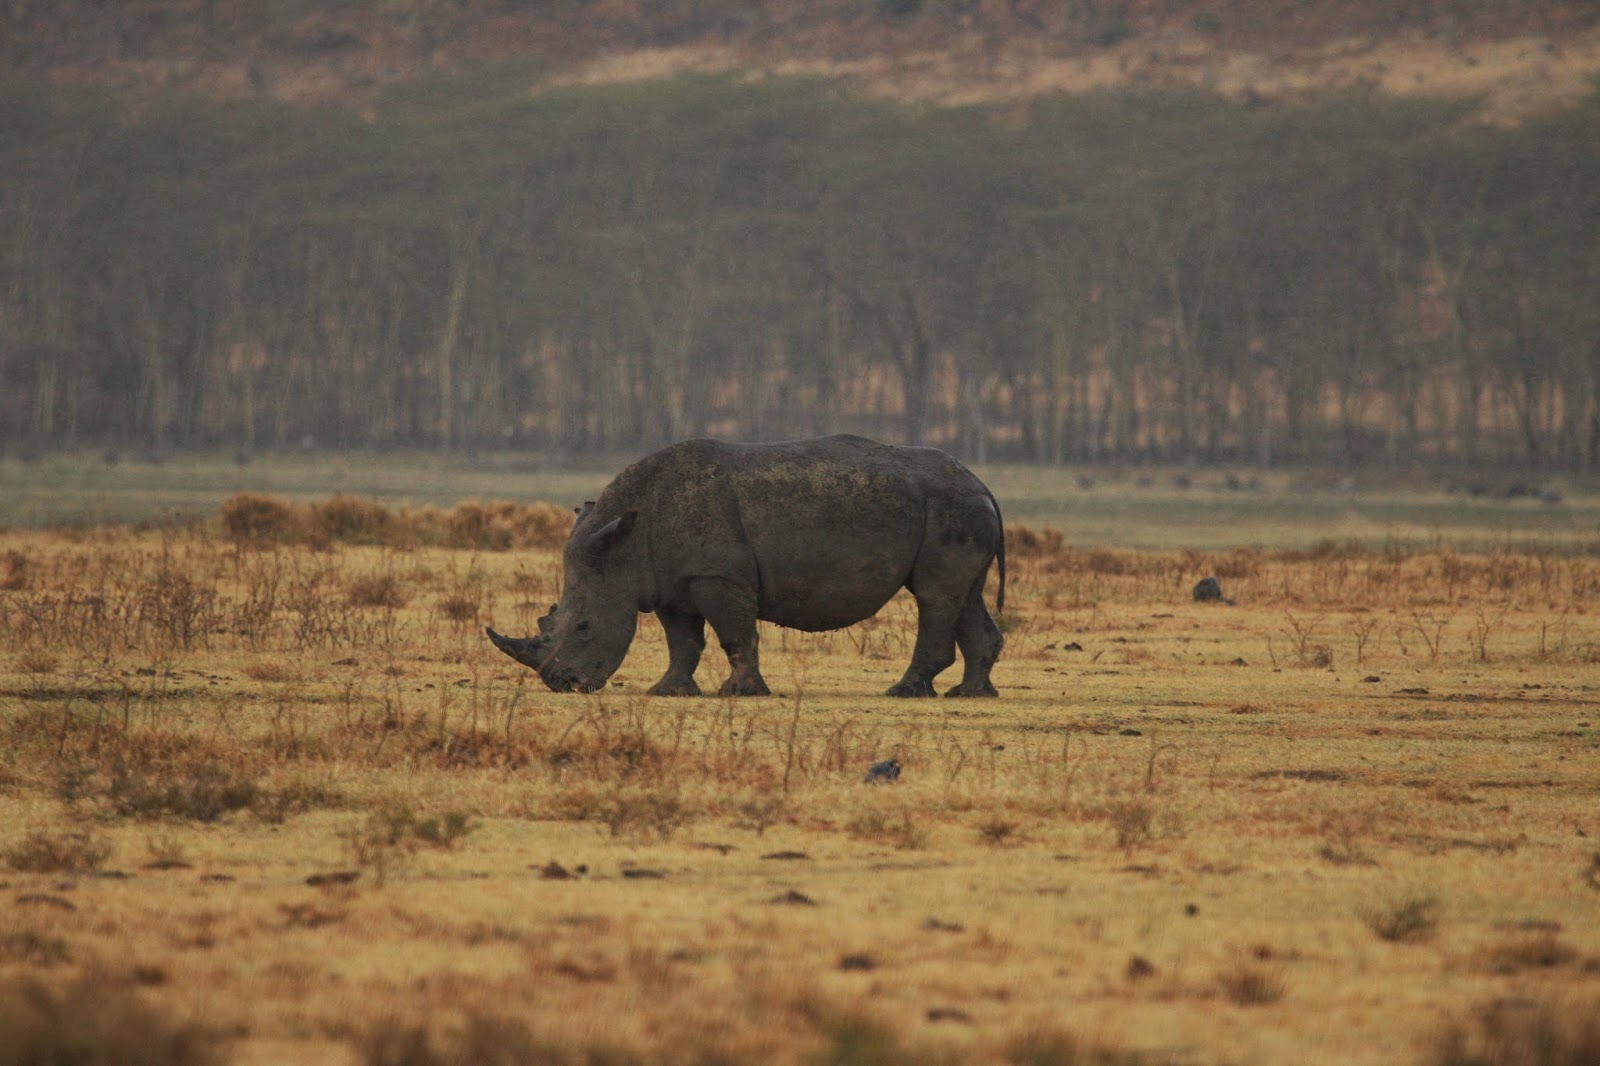 Rhino at Lake Nakuru National Park